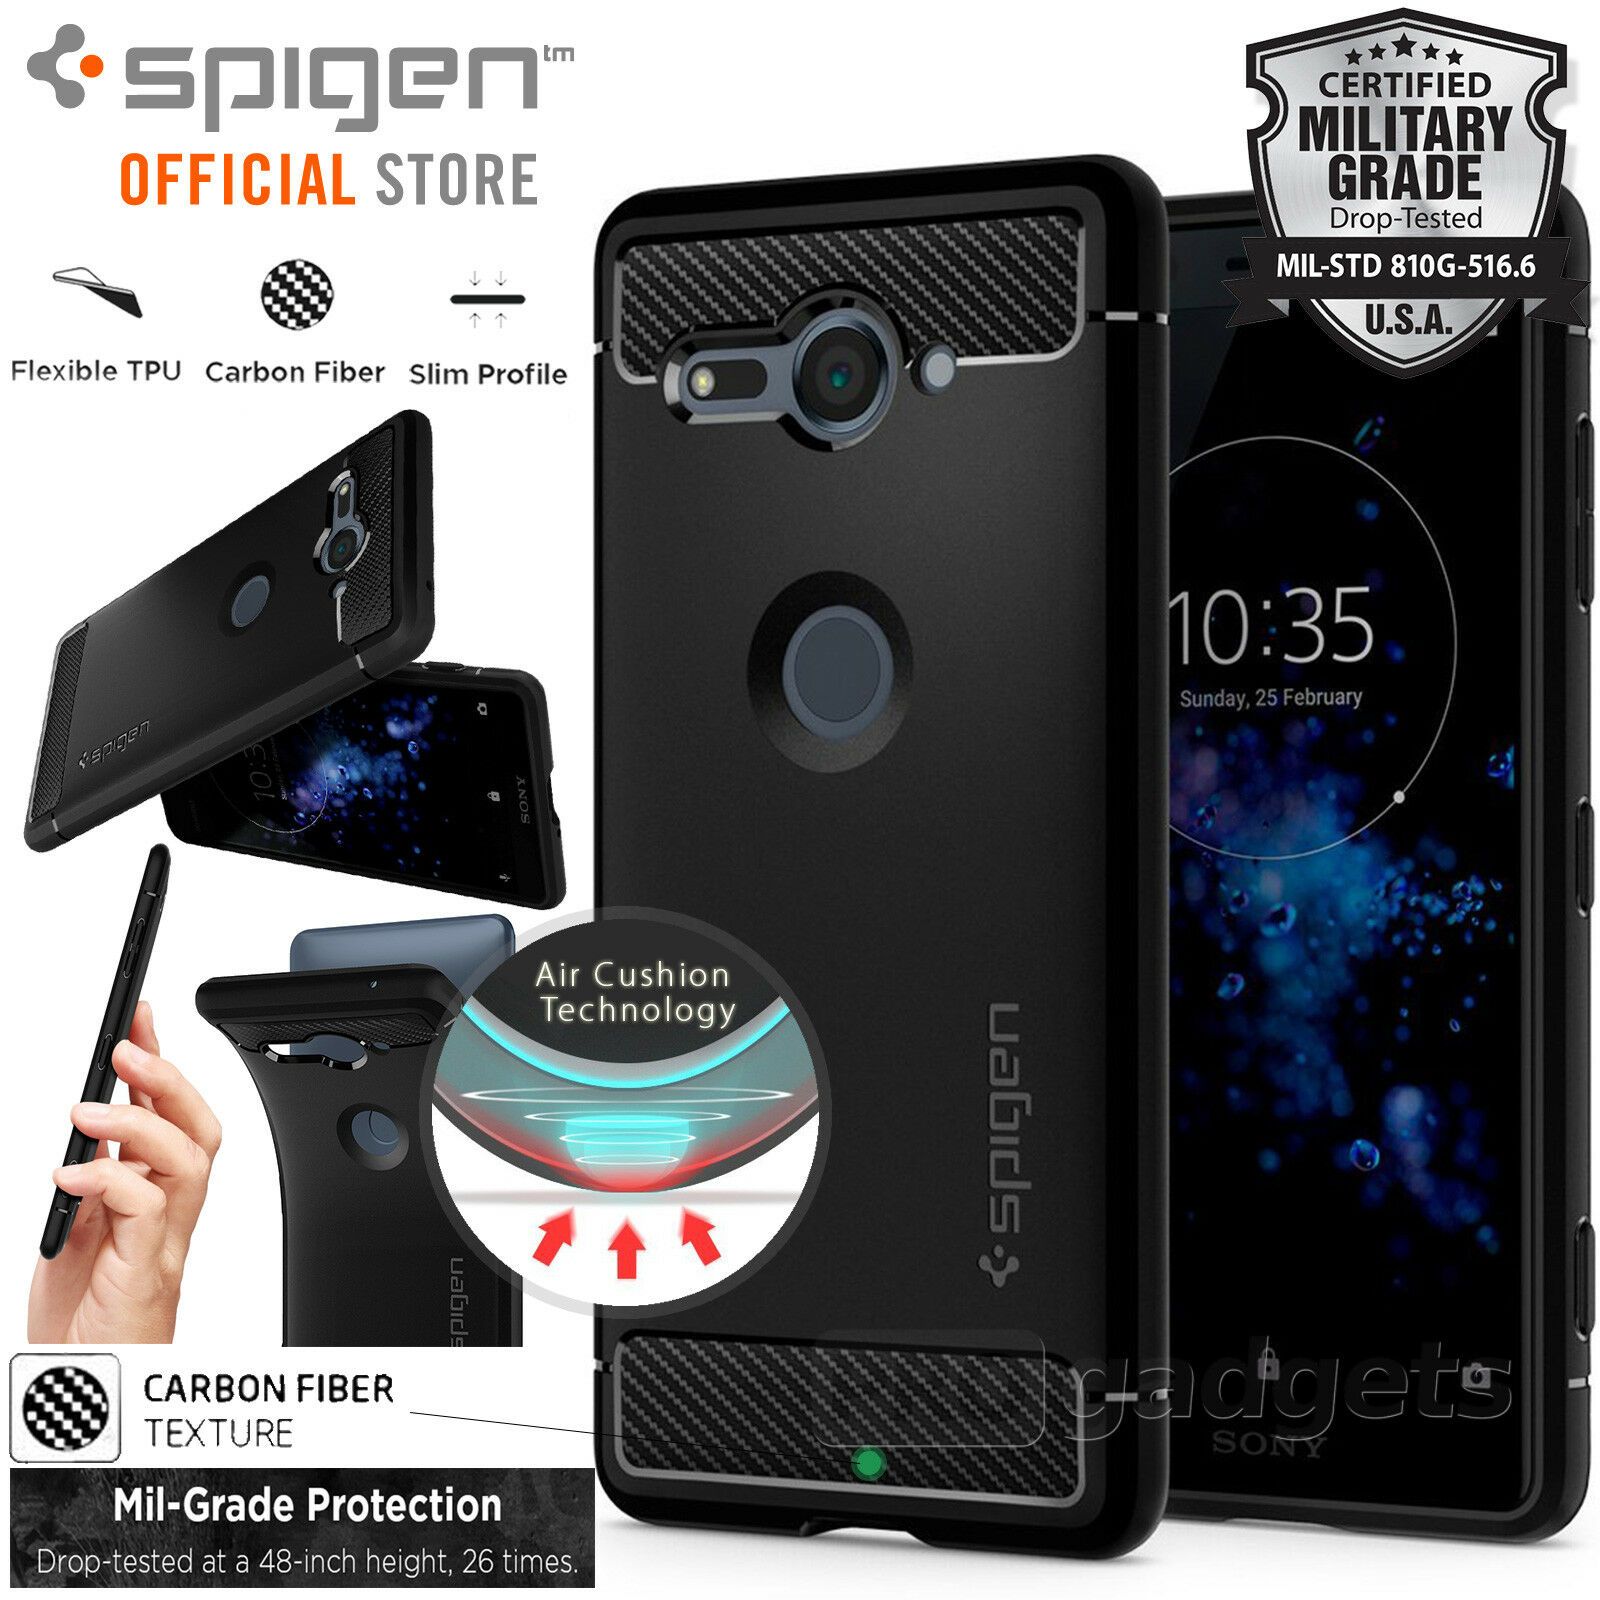 Xperia Xz2 Compact Case Genuine Spigen Rugged Armor Ultra Soft For Galaxy S8 Black Cover Sony 1 Of 10free Shipping See More